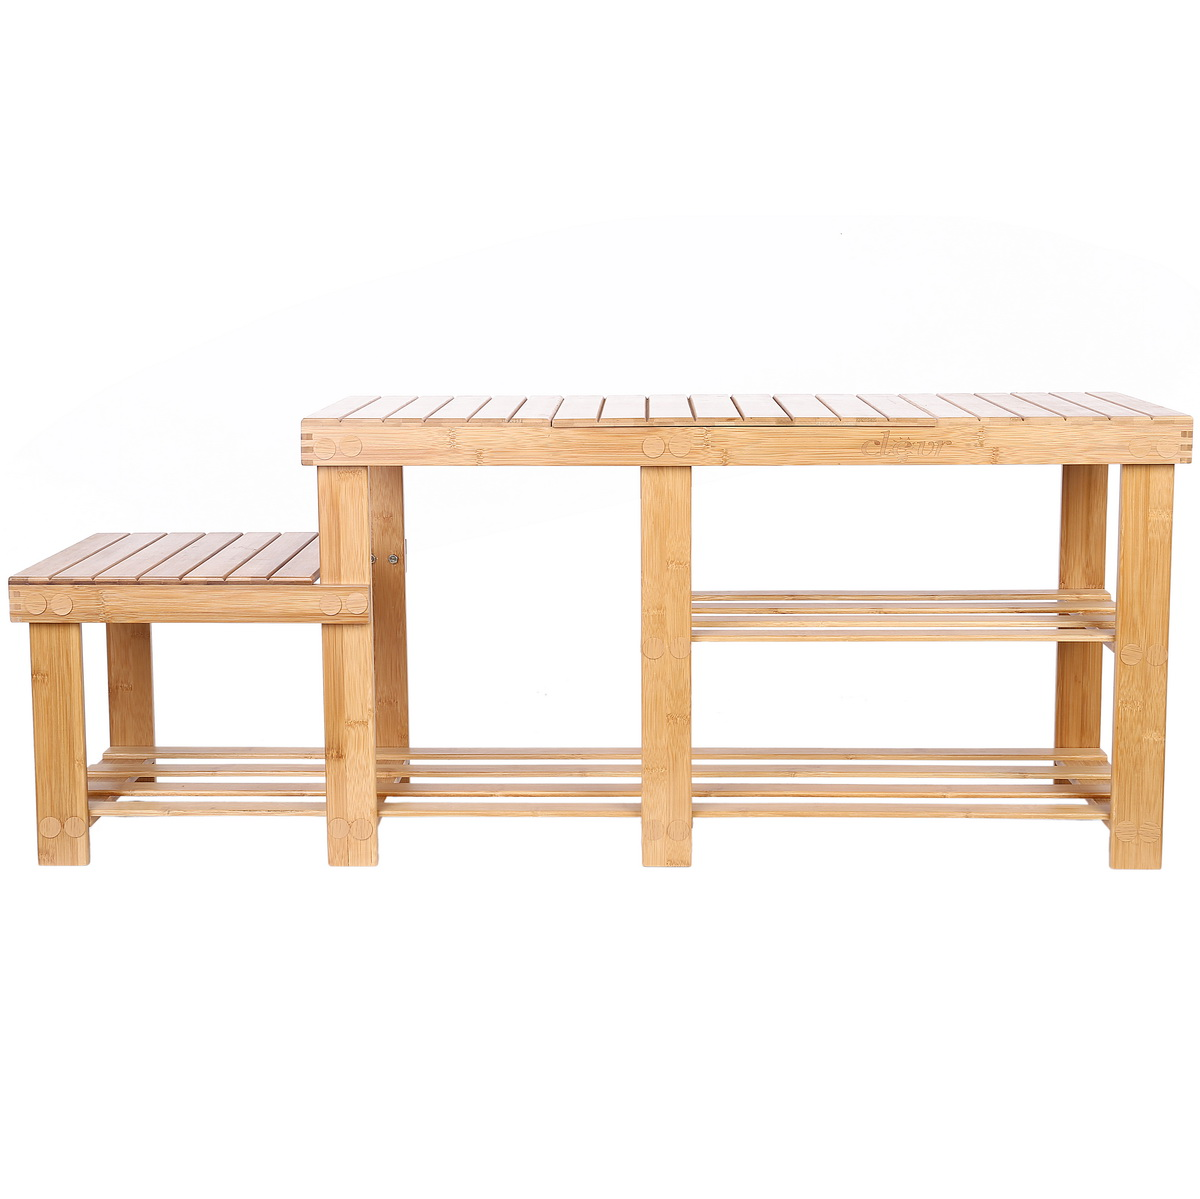 Clevr Natural Bamboo Shoe Storage Rack Bench With 2 Tier